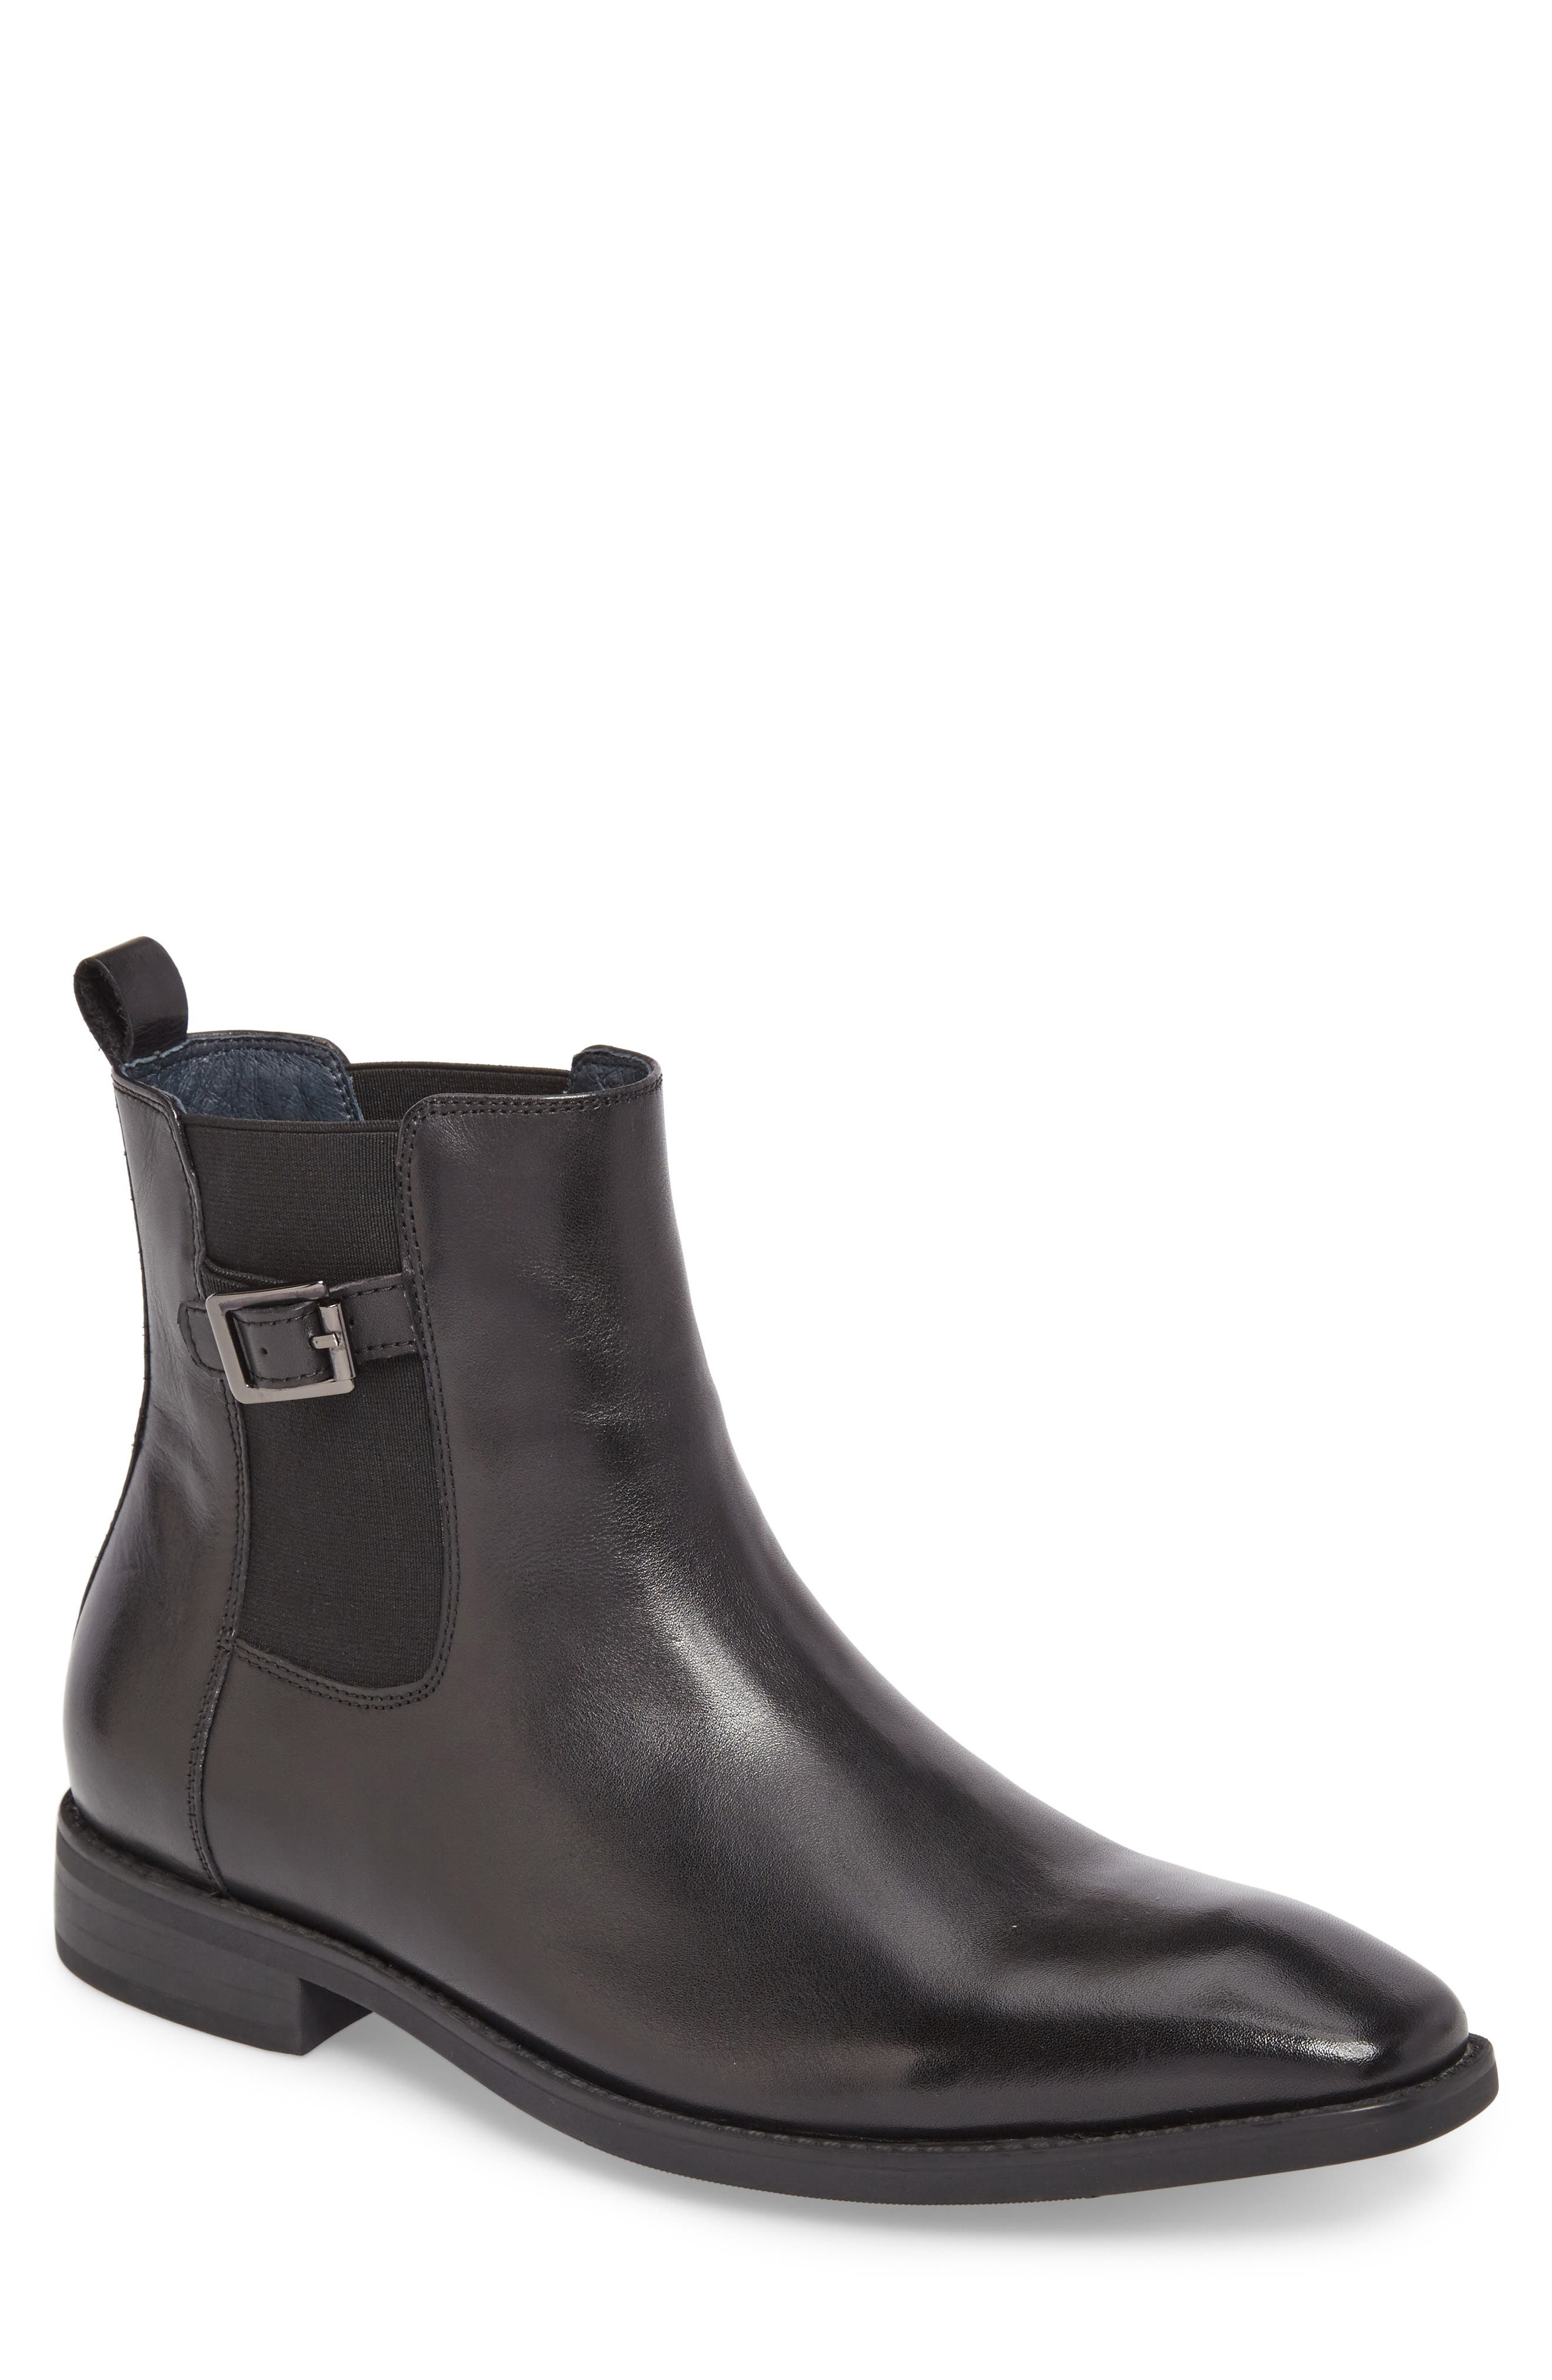 Loden Chelsea Boot,                         Main,                         color, 001